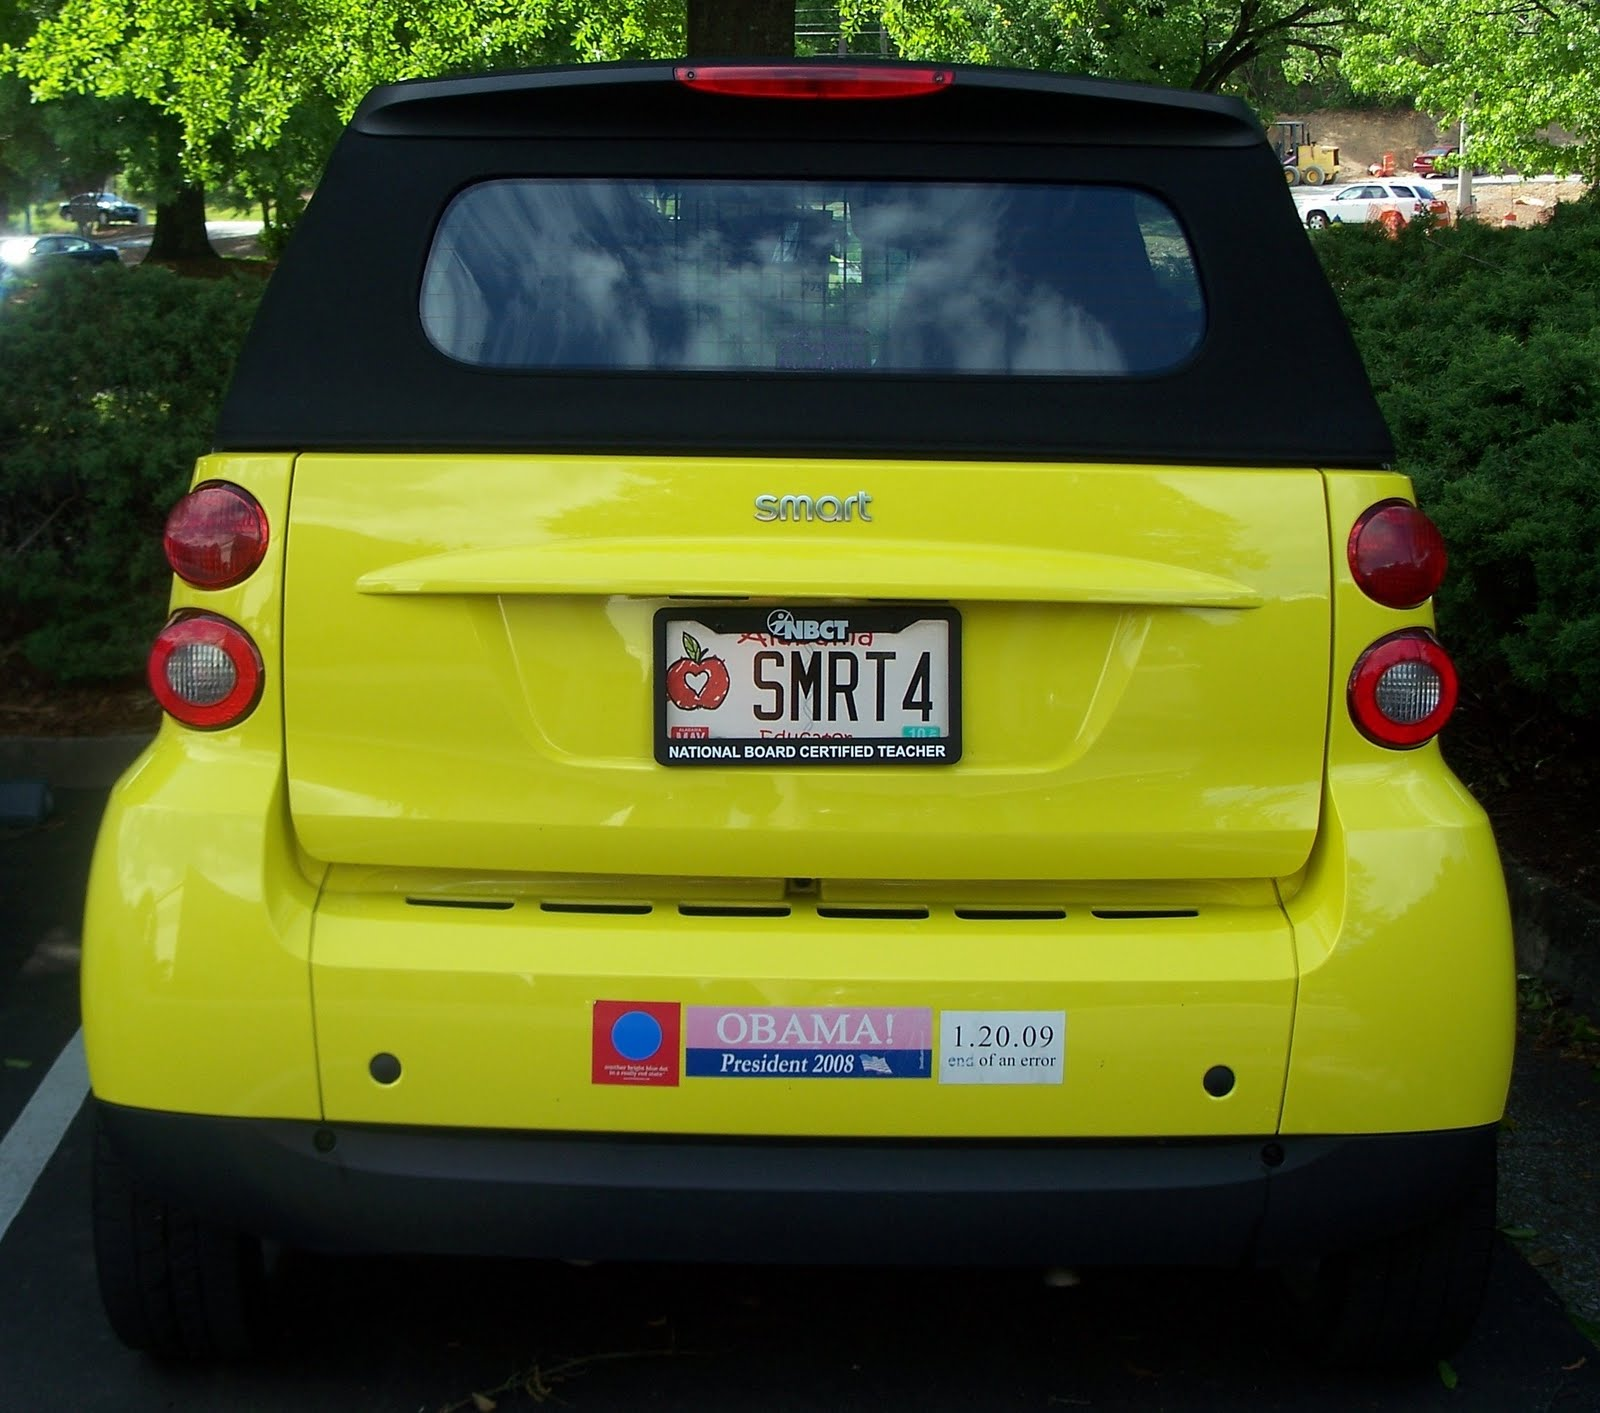 Smart car sticker designs - We Saw This Smart Car In A Dealership Parking Lot Today Tcguy S Remark After Seeing The Obama Bumper Sticker Was That S Not Such A Smart Car